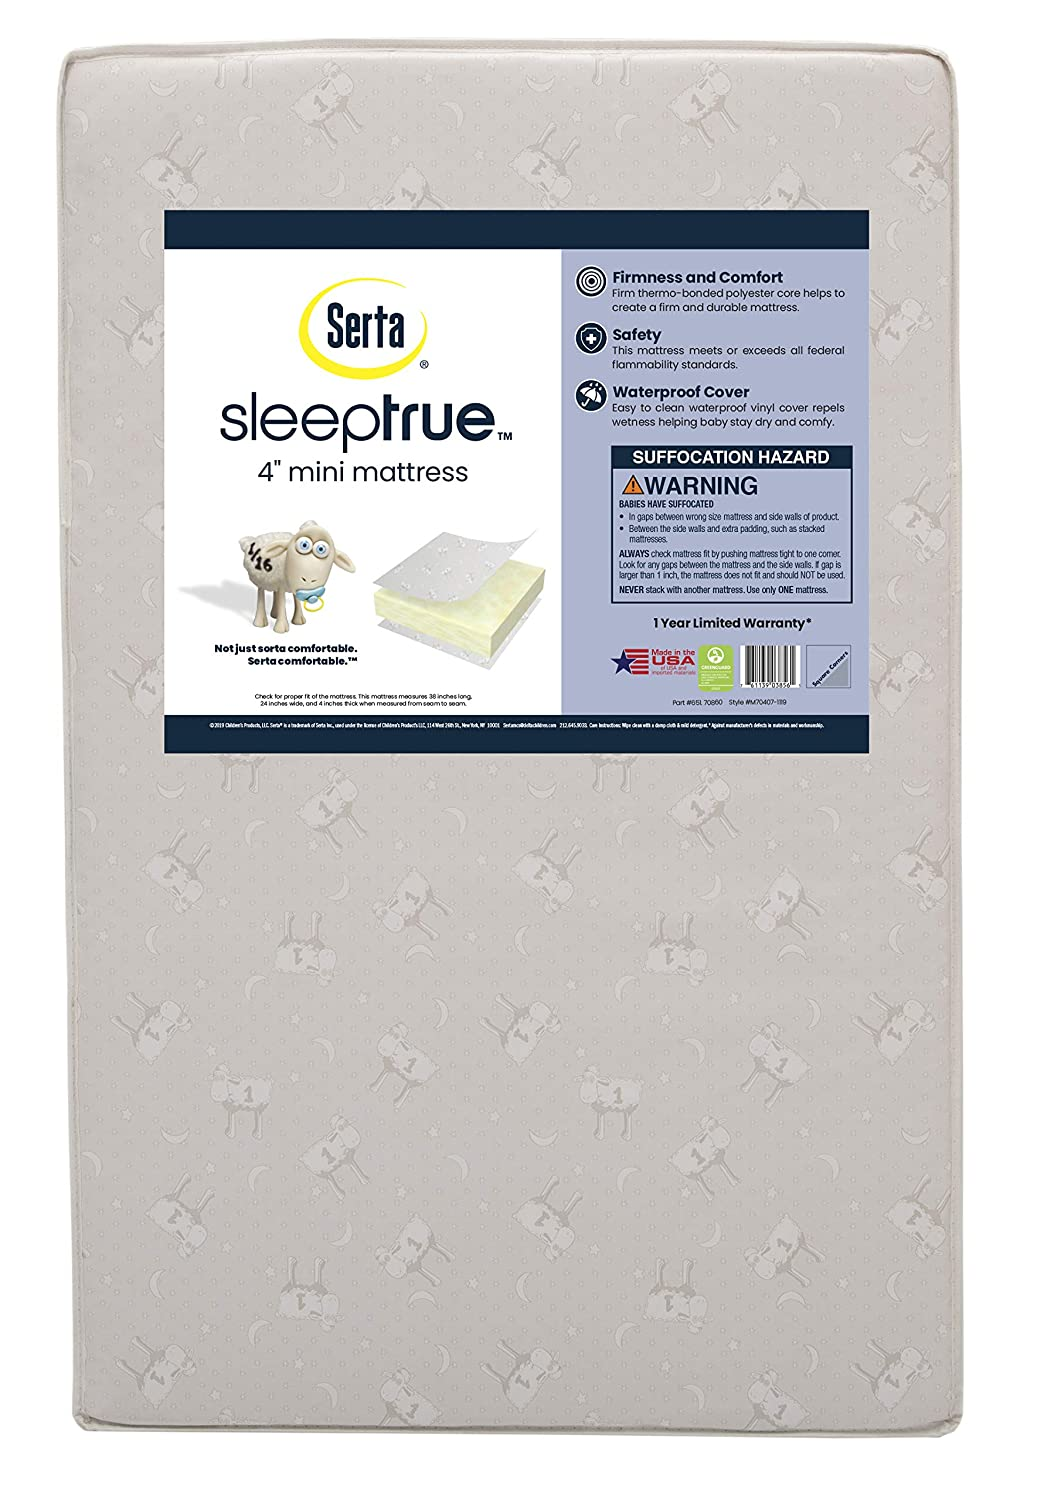 Serta SleepTrue 4-Inch Mini Crib Mattress | Waterproof | GREENGUARD Gold Certified |Trusted 1 Year Warranty | Made in The USA